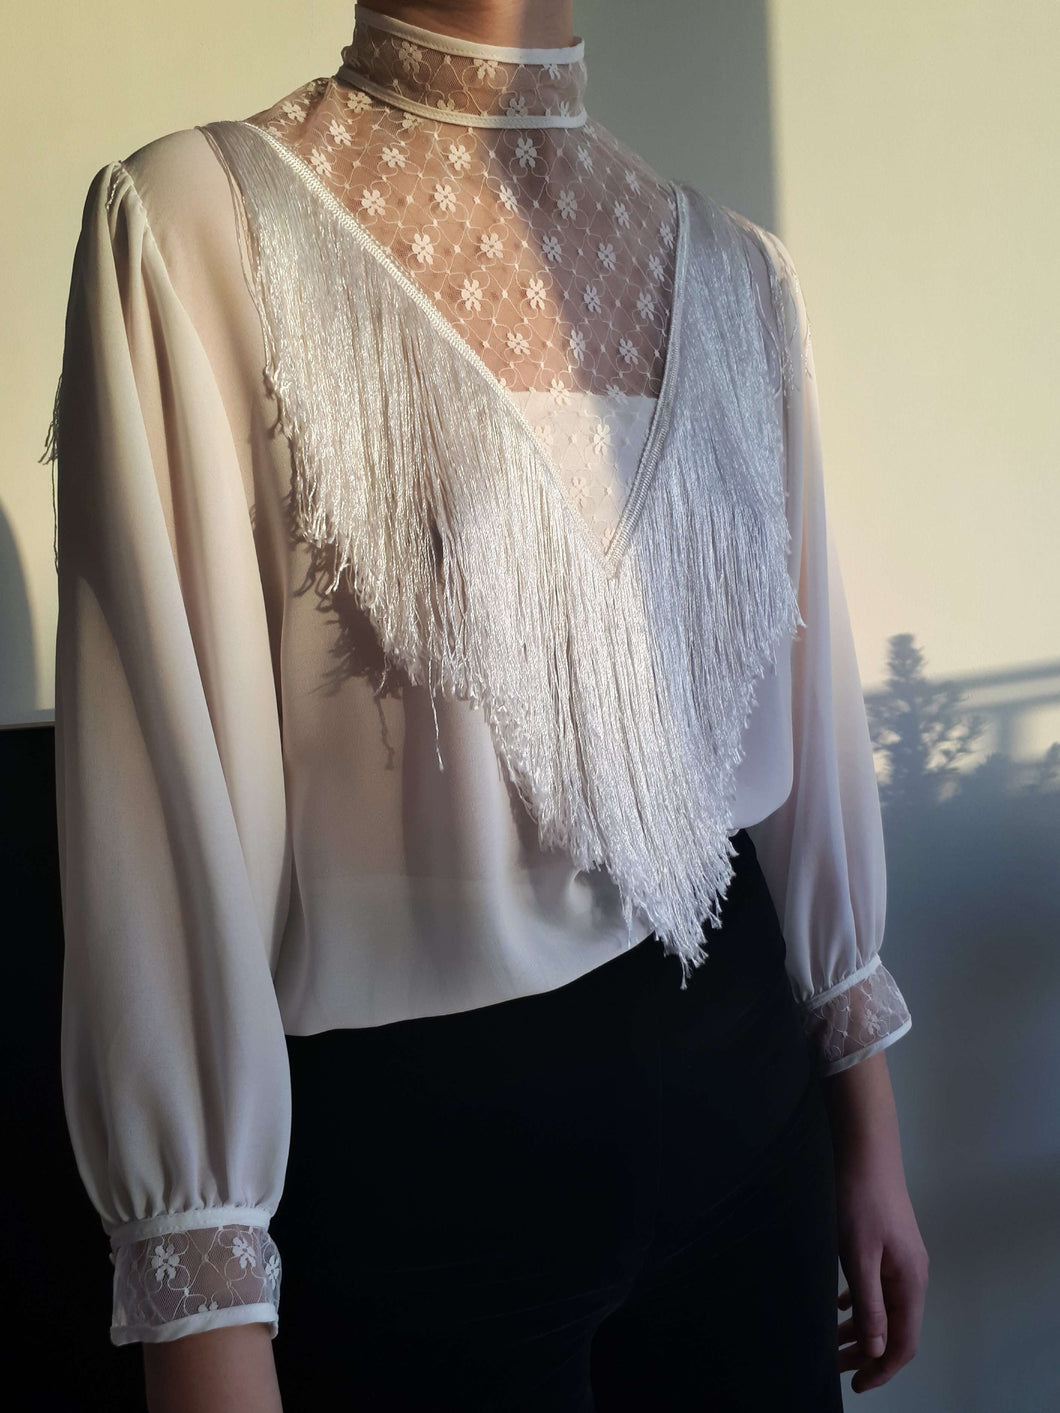 80s COWBOY BLOUSE | fringes | S/M:[Past out]:[vintage clothes]